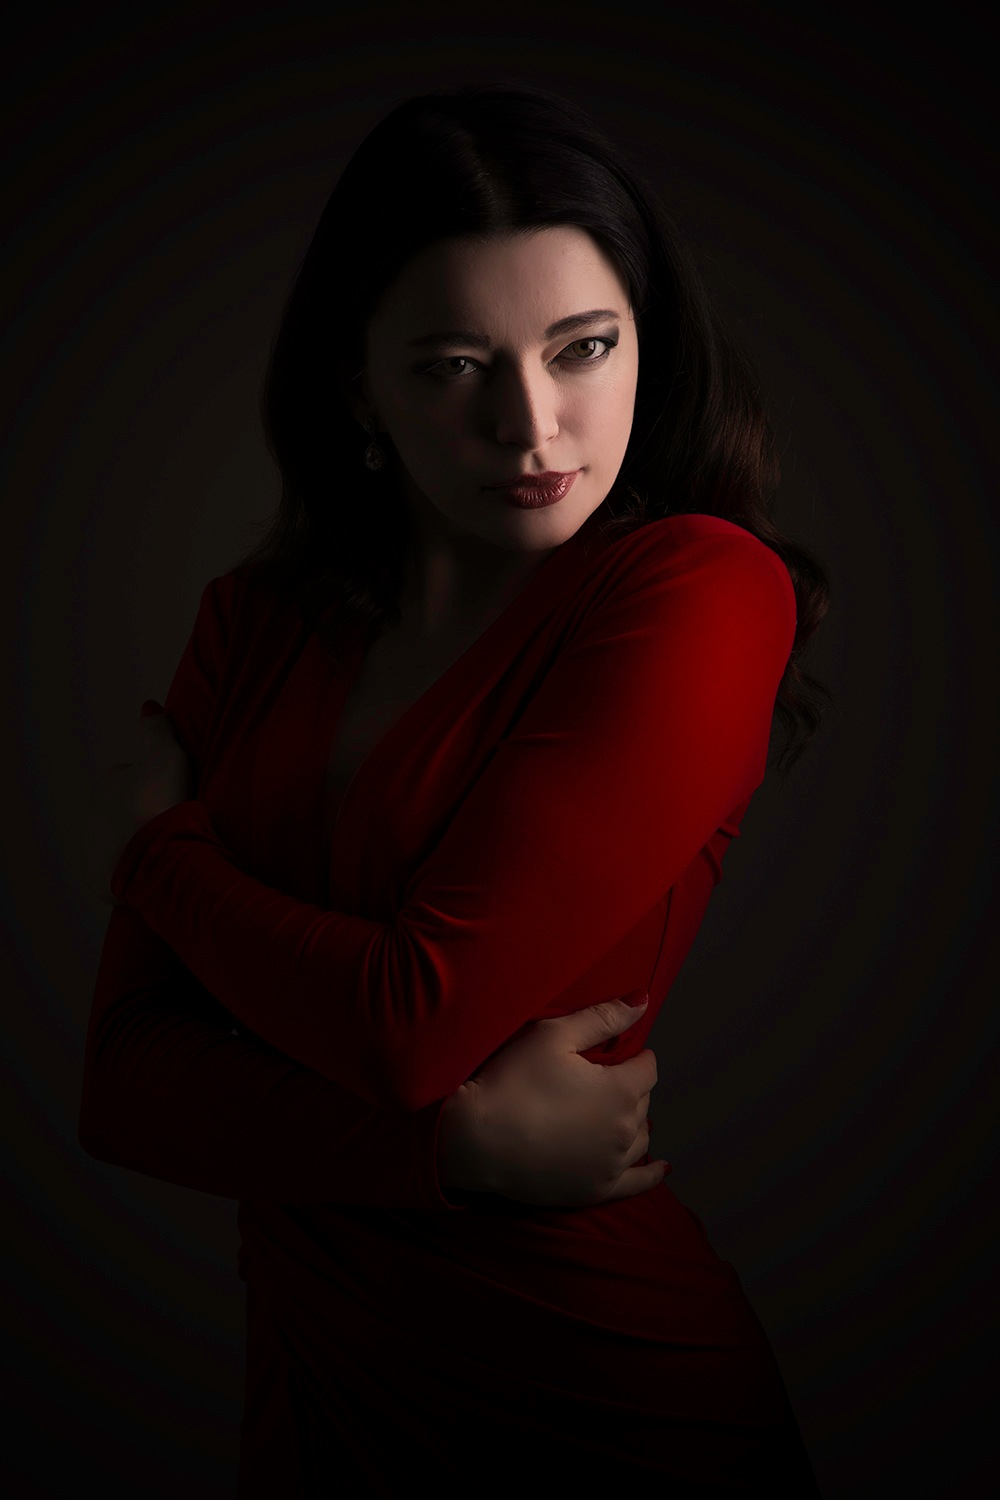 red dress by Kevin Robertson